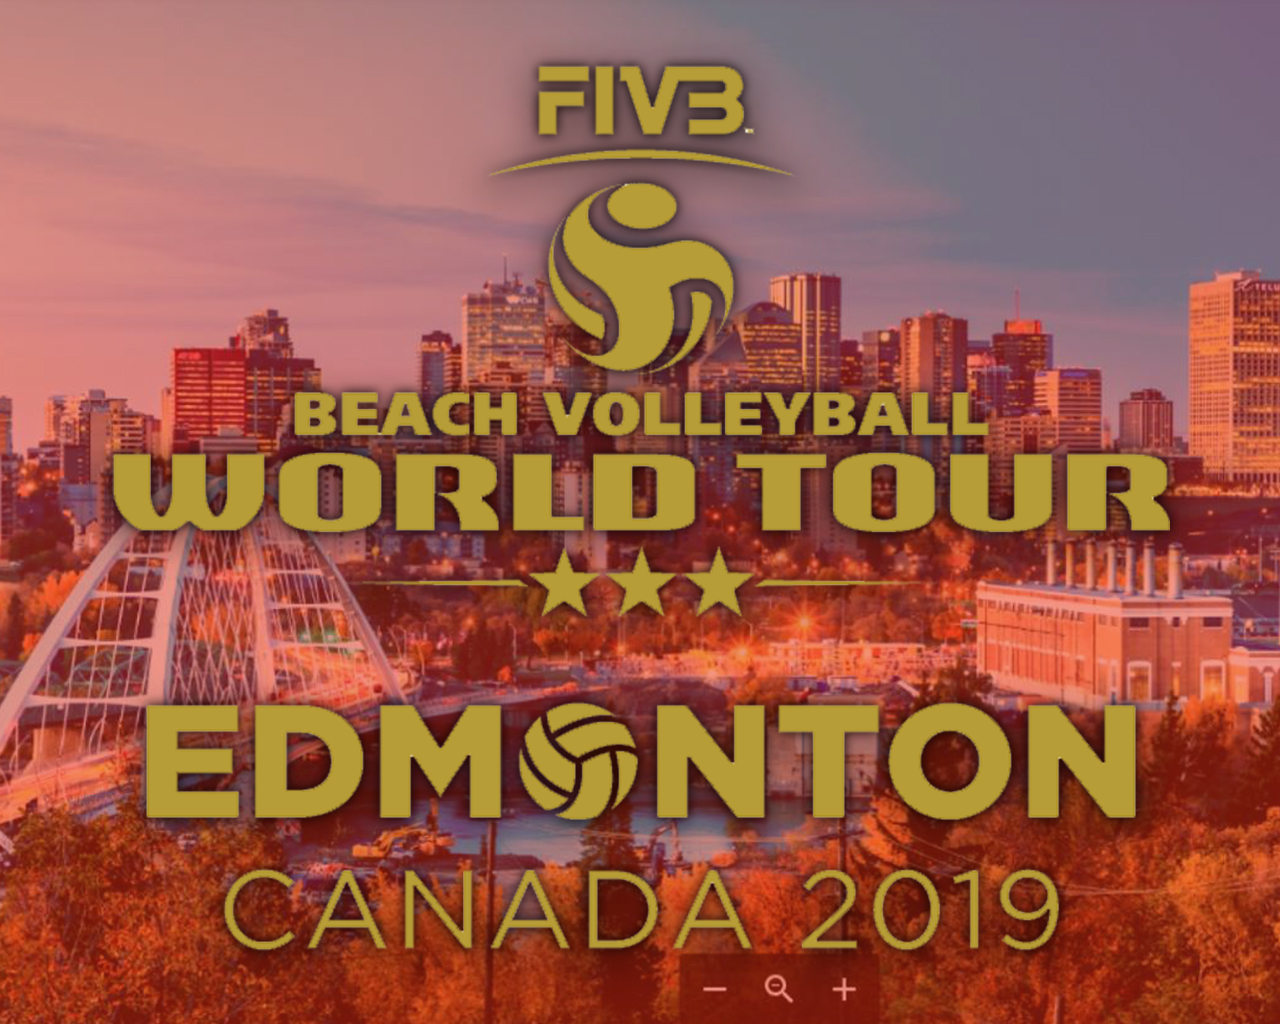 A Homecoming of Champions - 2019 FIVB Edmonton July 17th - 21st